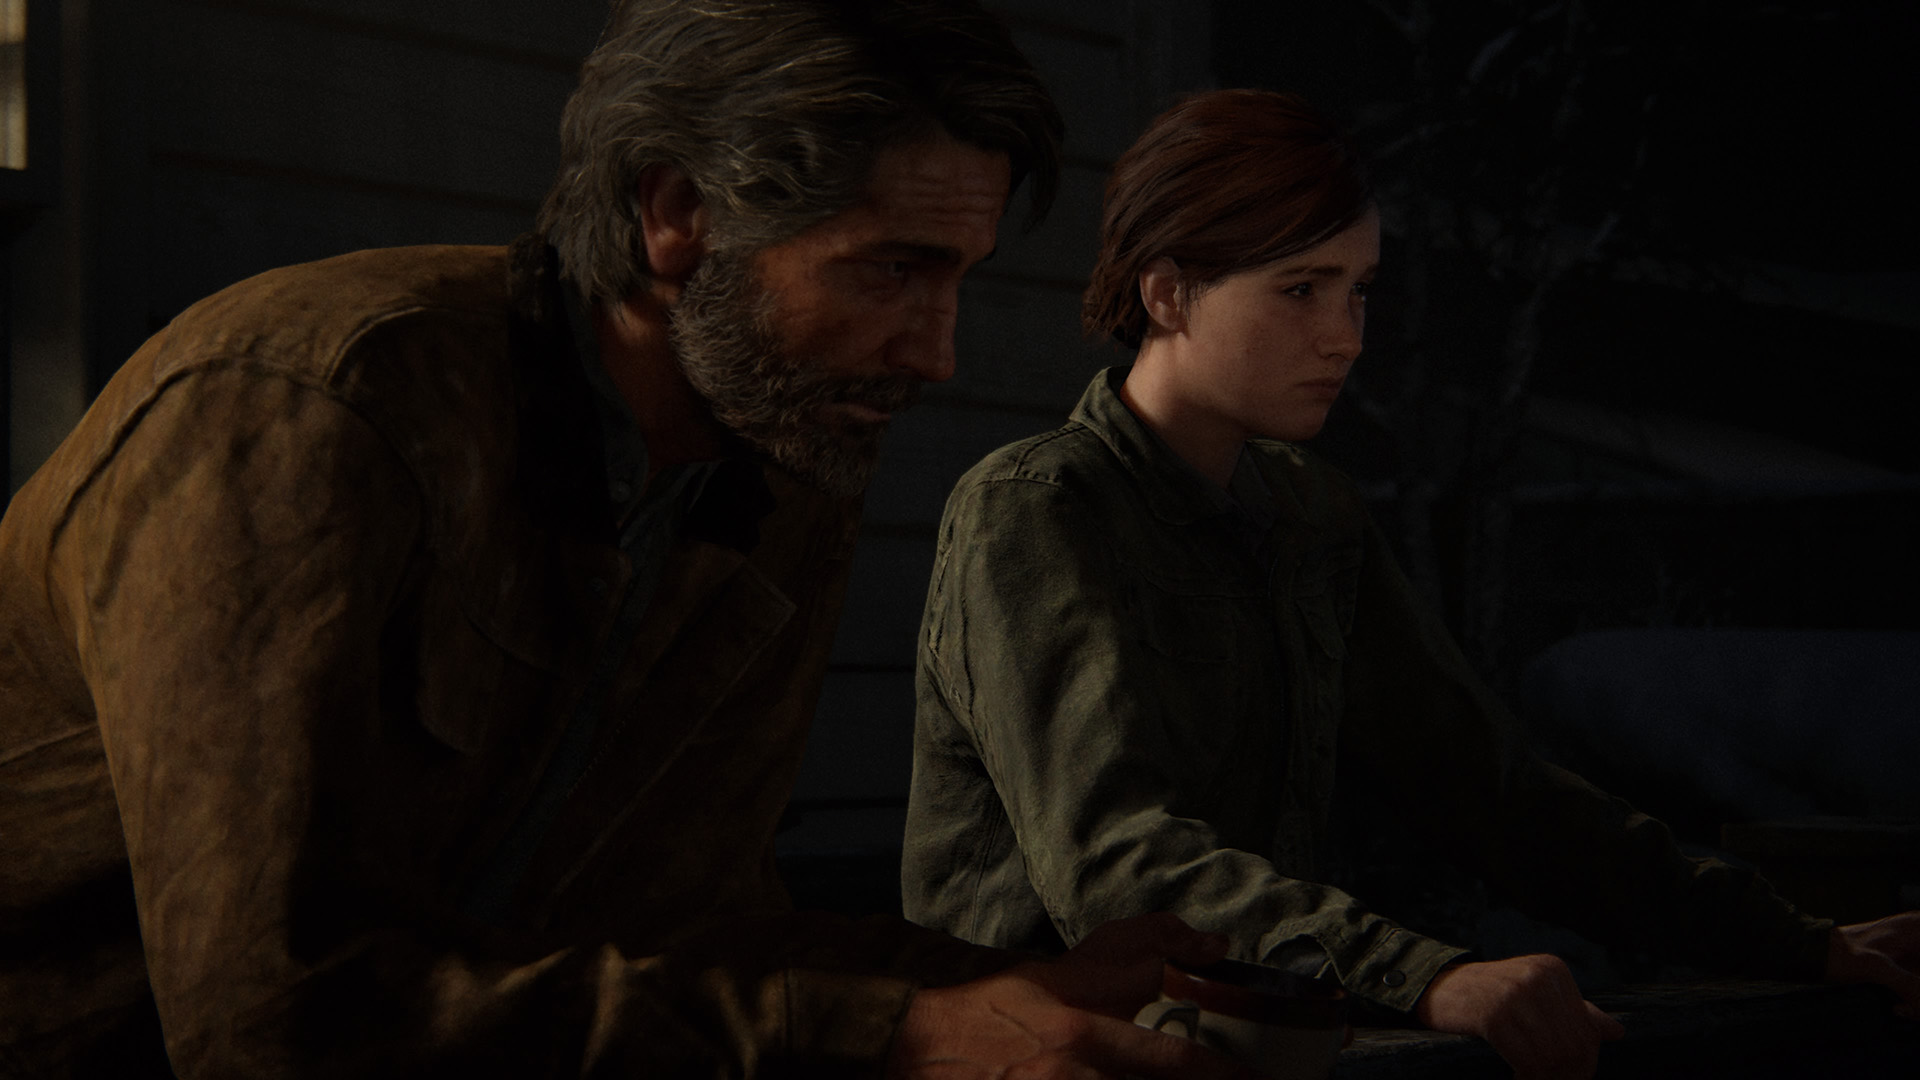 The Last of Us Part 2